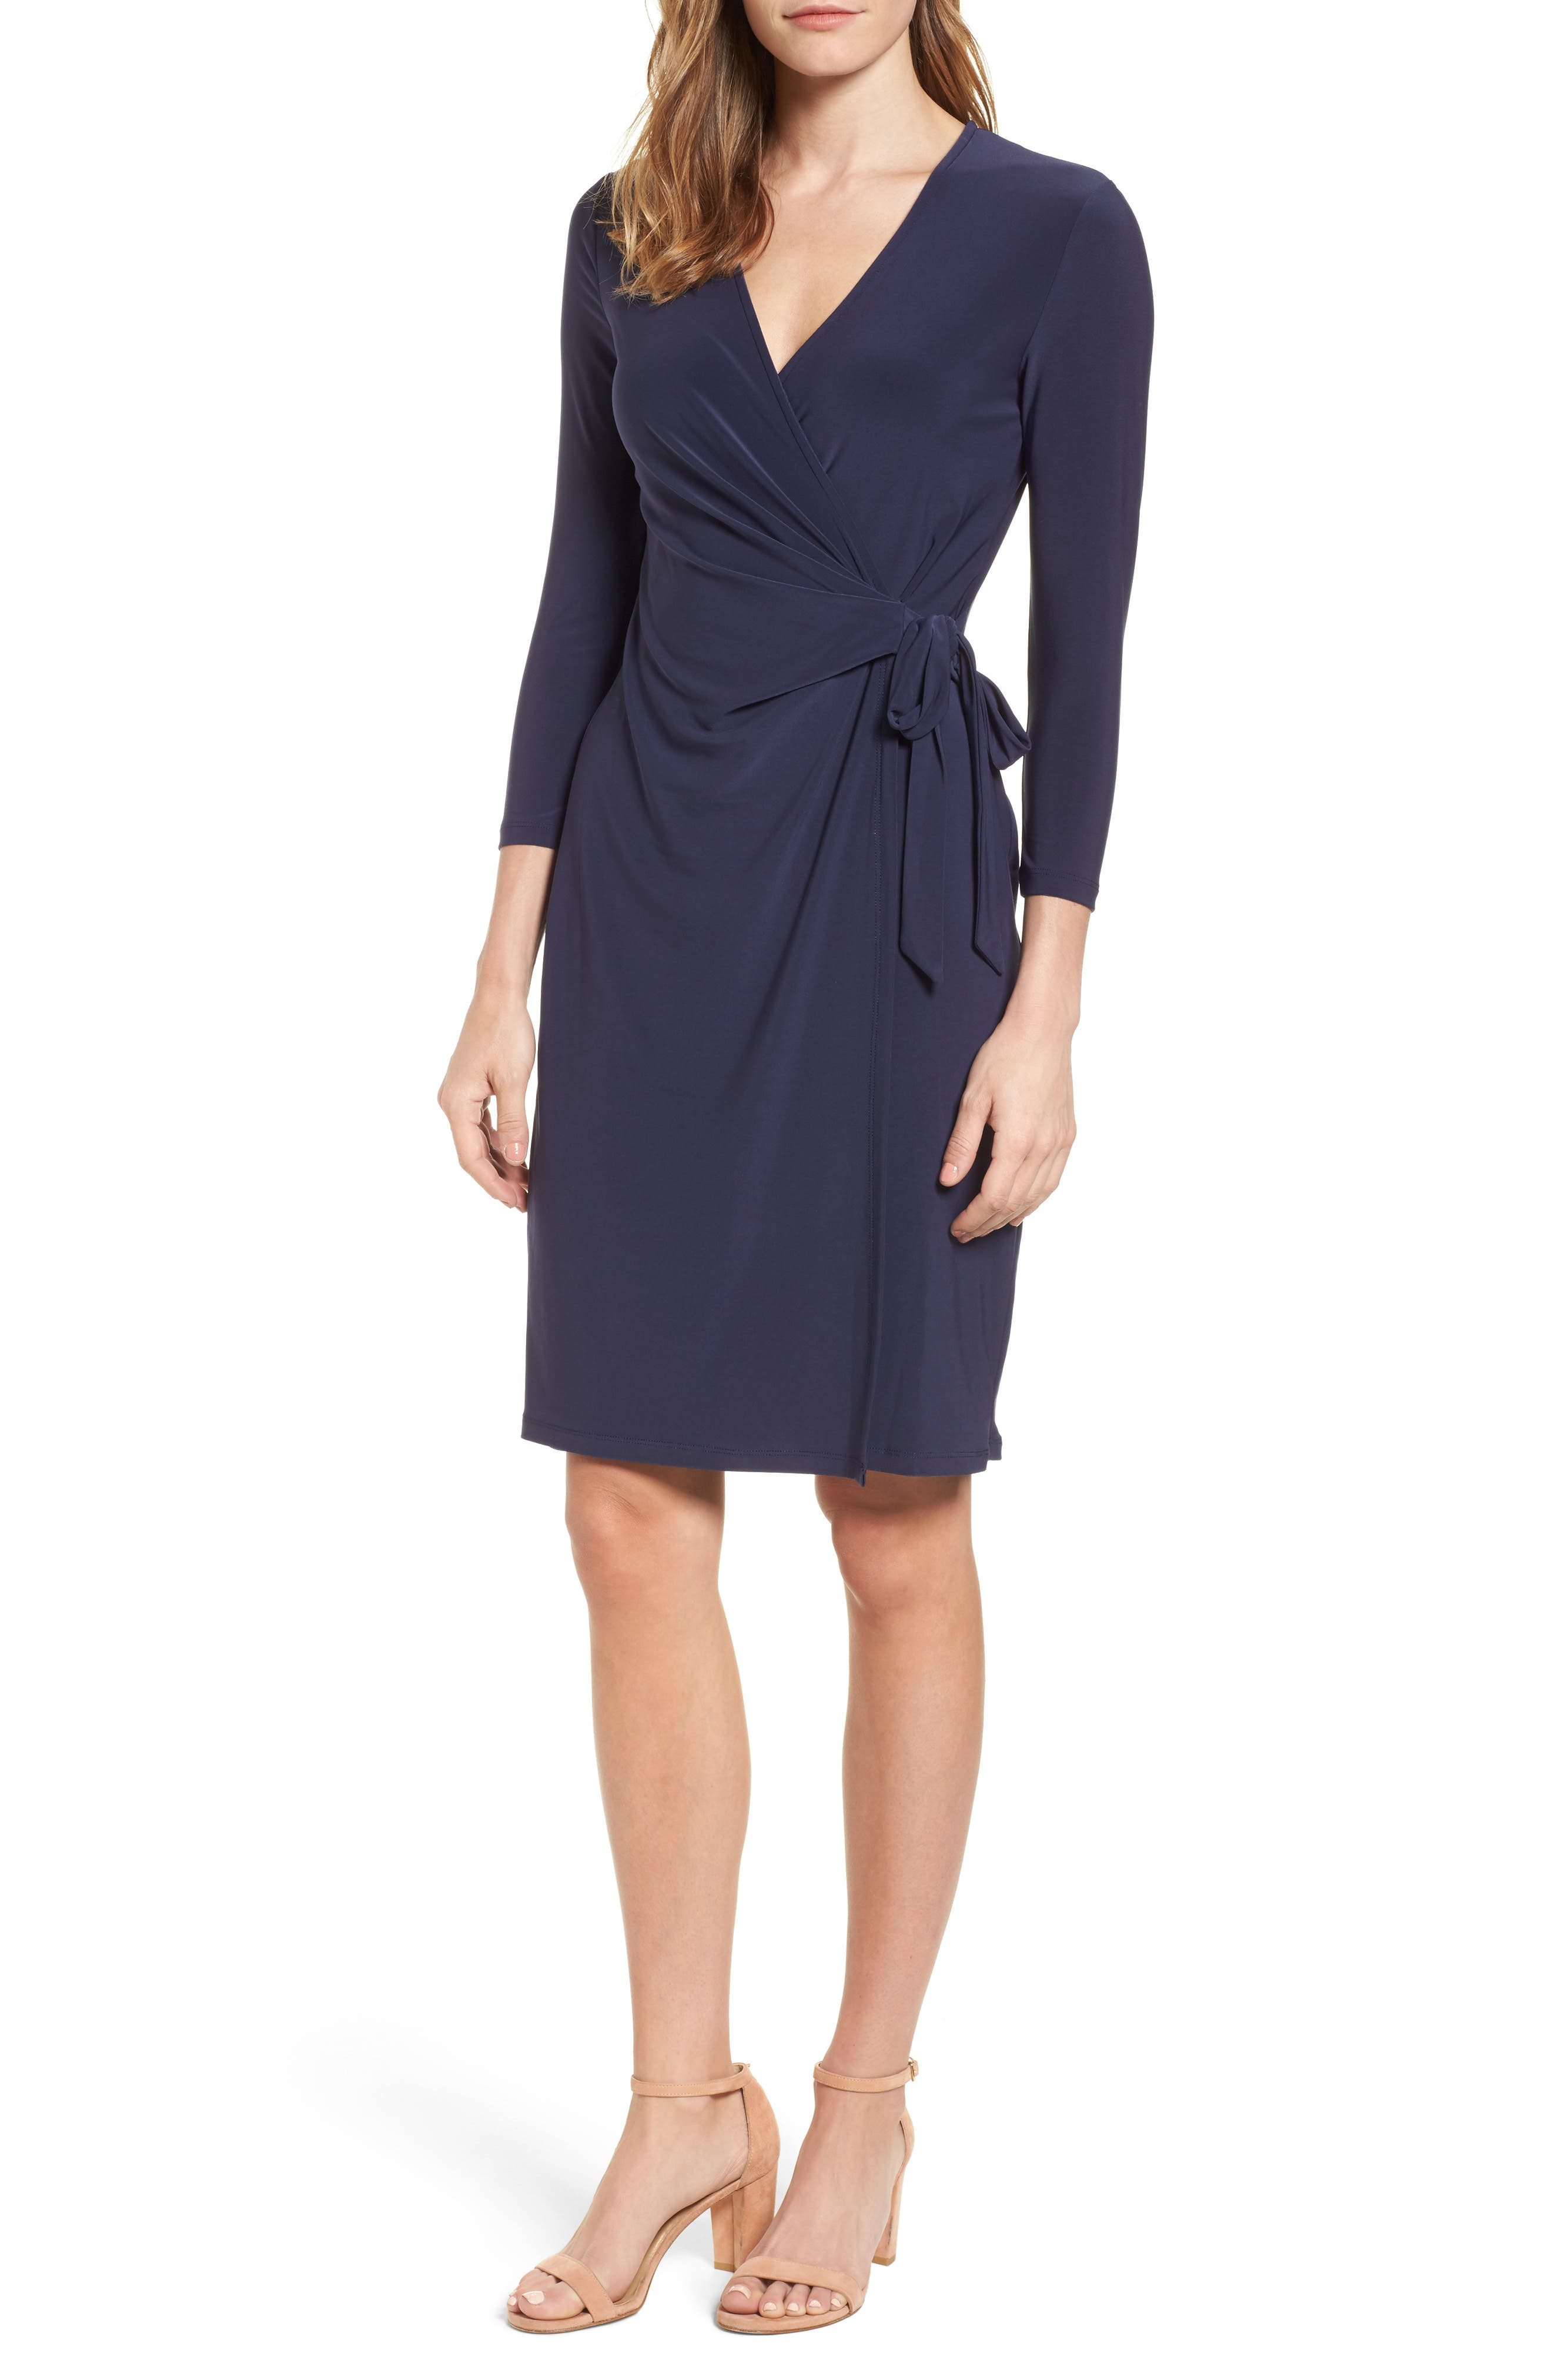 Alternate Image 1 Selected - Anne Klein Jersey Faux Wrap Dress